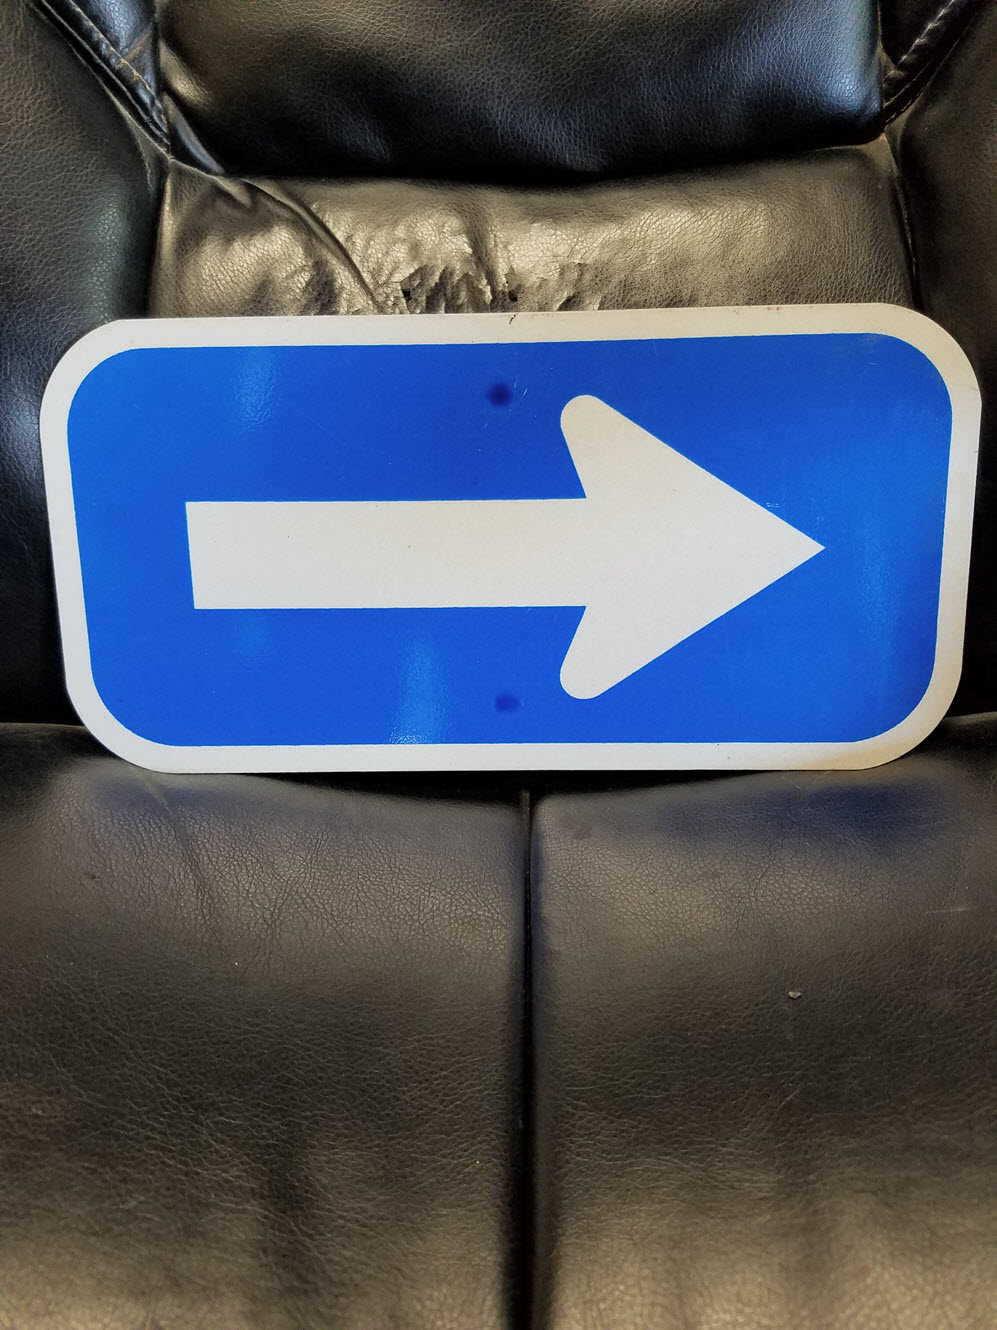 Path of travel directional sign Arrow (1).jpg